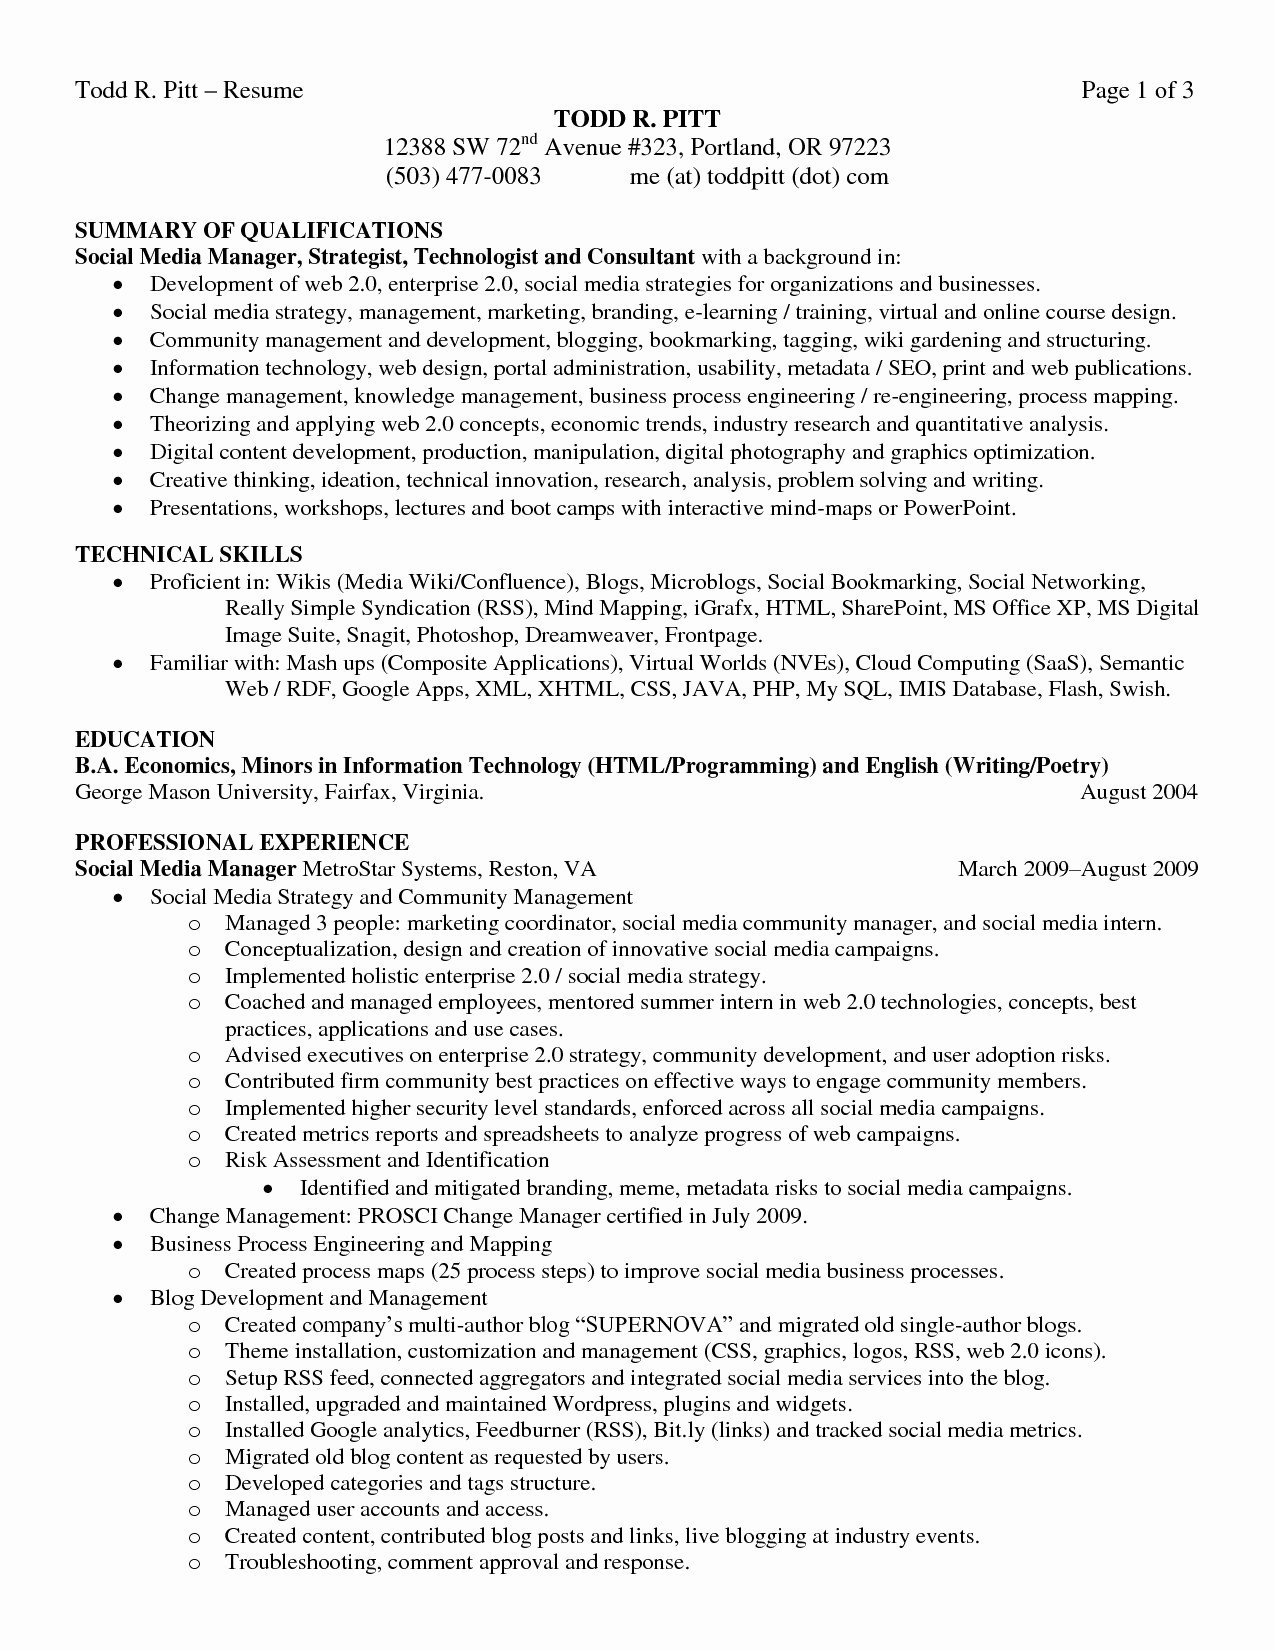 supervisor qualifications resume Collection-Supervisor Skills Resume 25 Supervisor Skills Resume 11-j